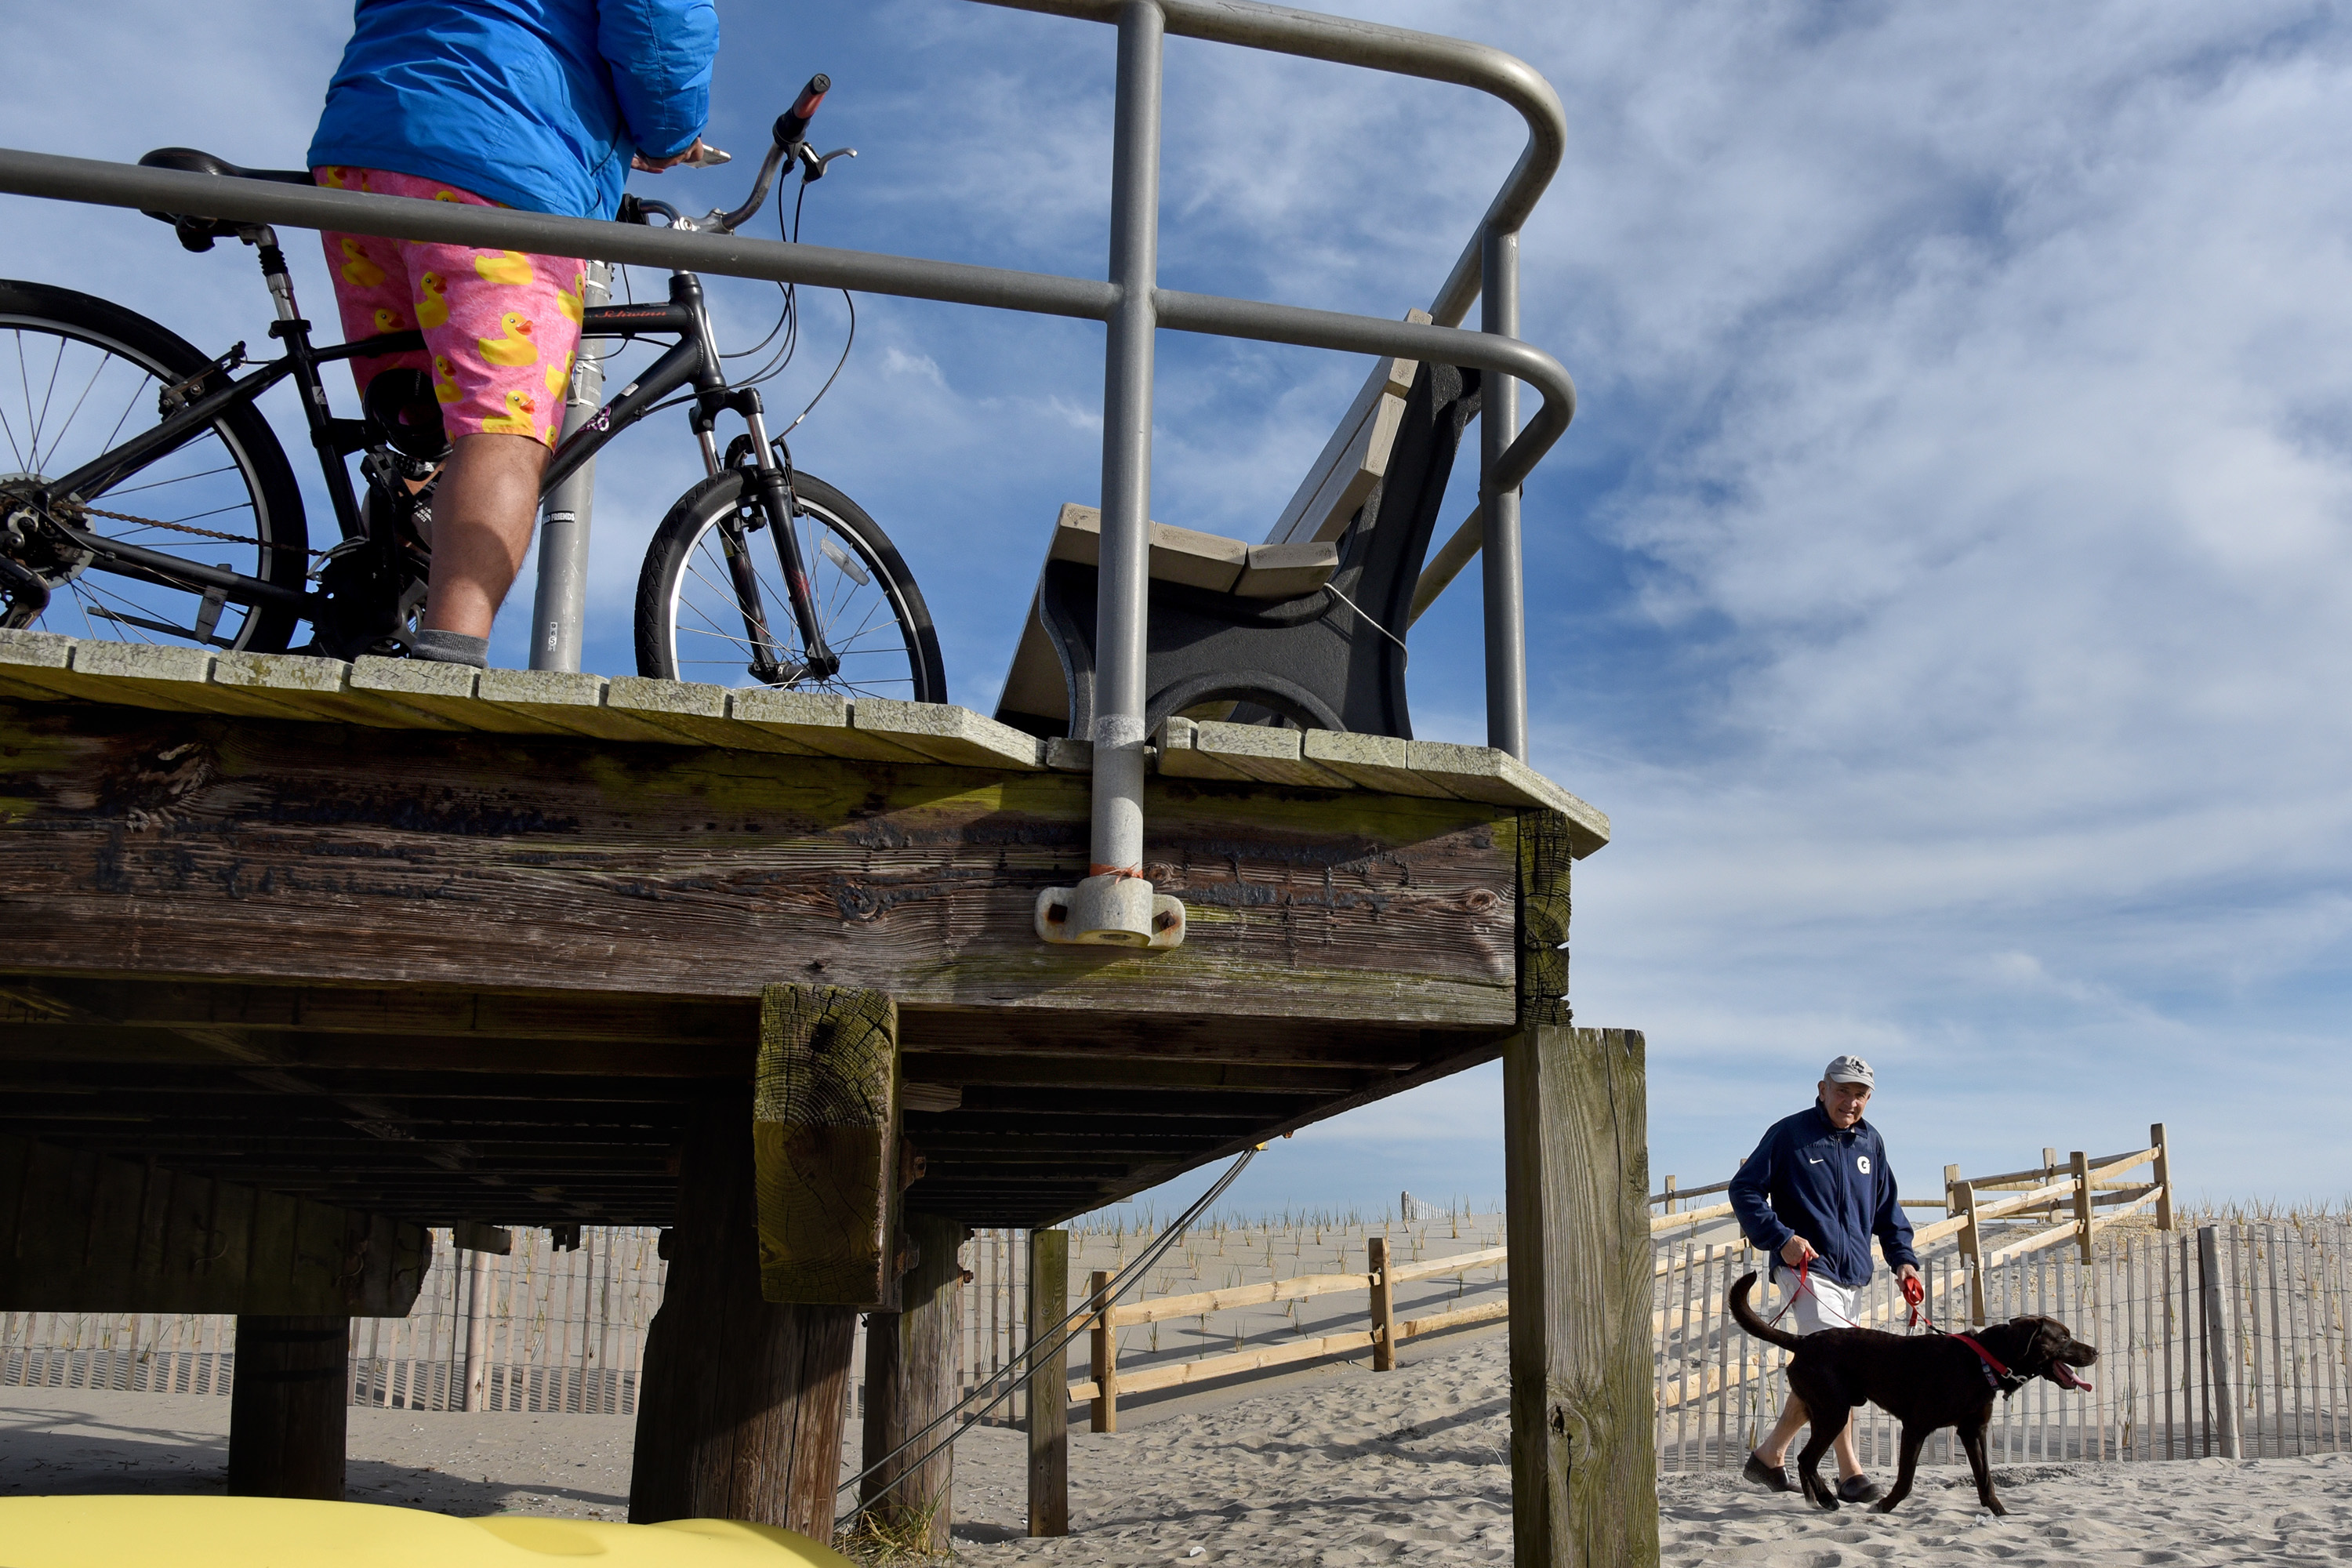 Margate resident Frank Previti walks his chocolate labs near the end of the Ventnor boardwalk where it stops at Fredericksburg Avenue - the border between Ventnor and Margate. Some Margate residents would like to see Ventnor´s boardwalk extended into their town.